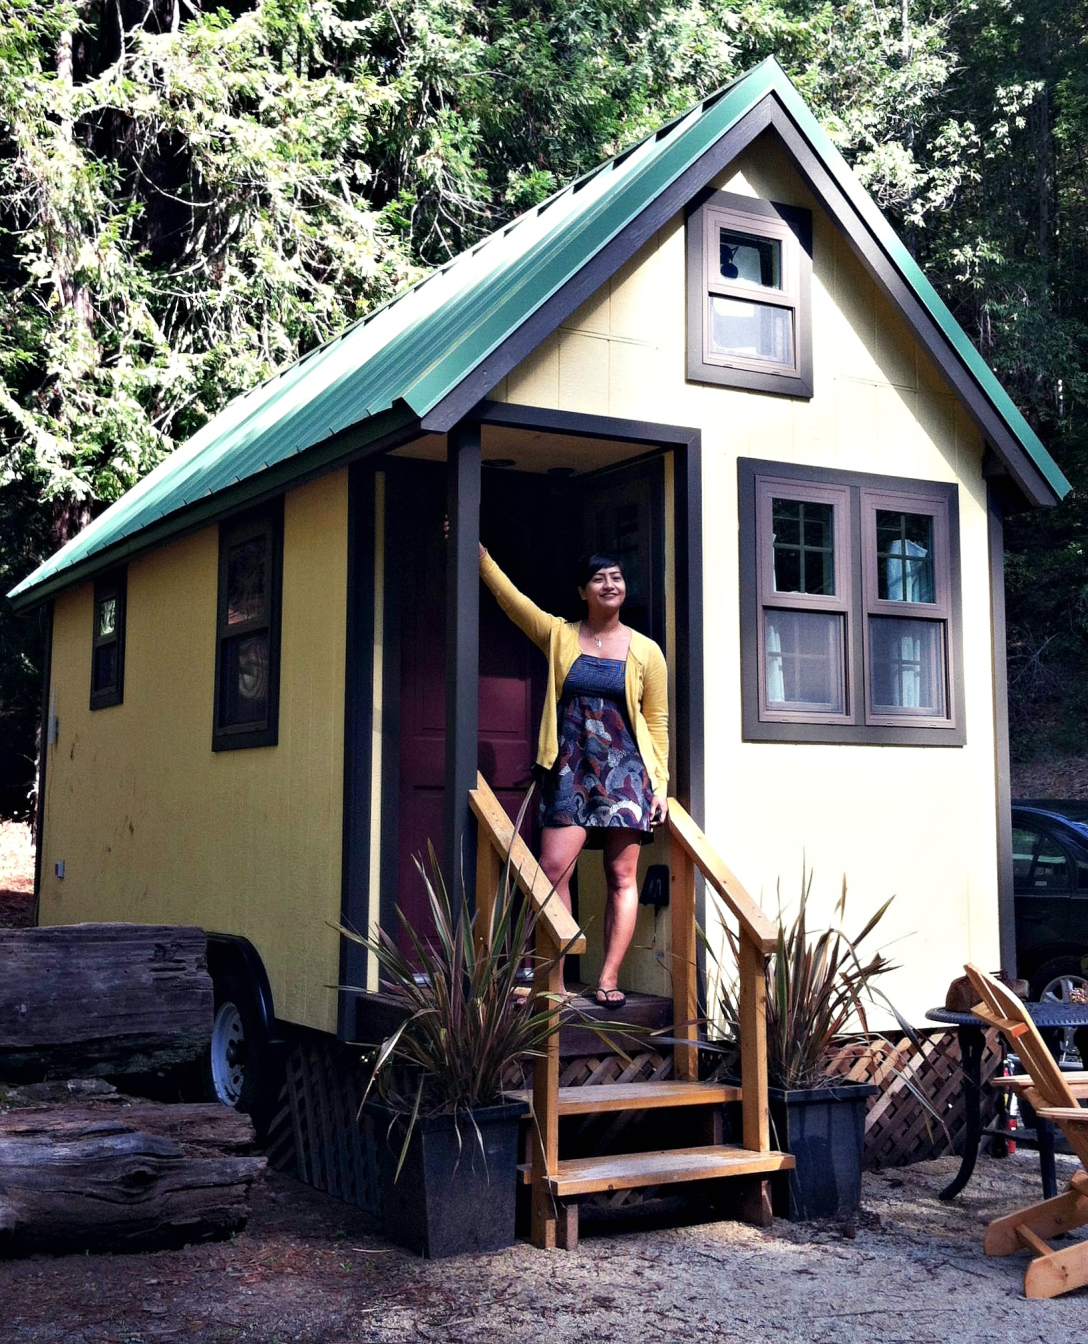 A tiny house on wheels in the woods of Healdsburg, where we stayed in March 2014.